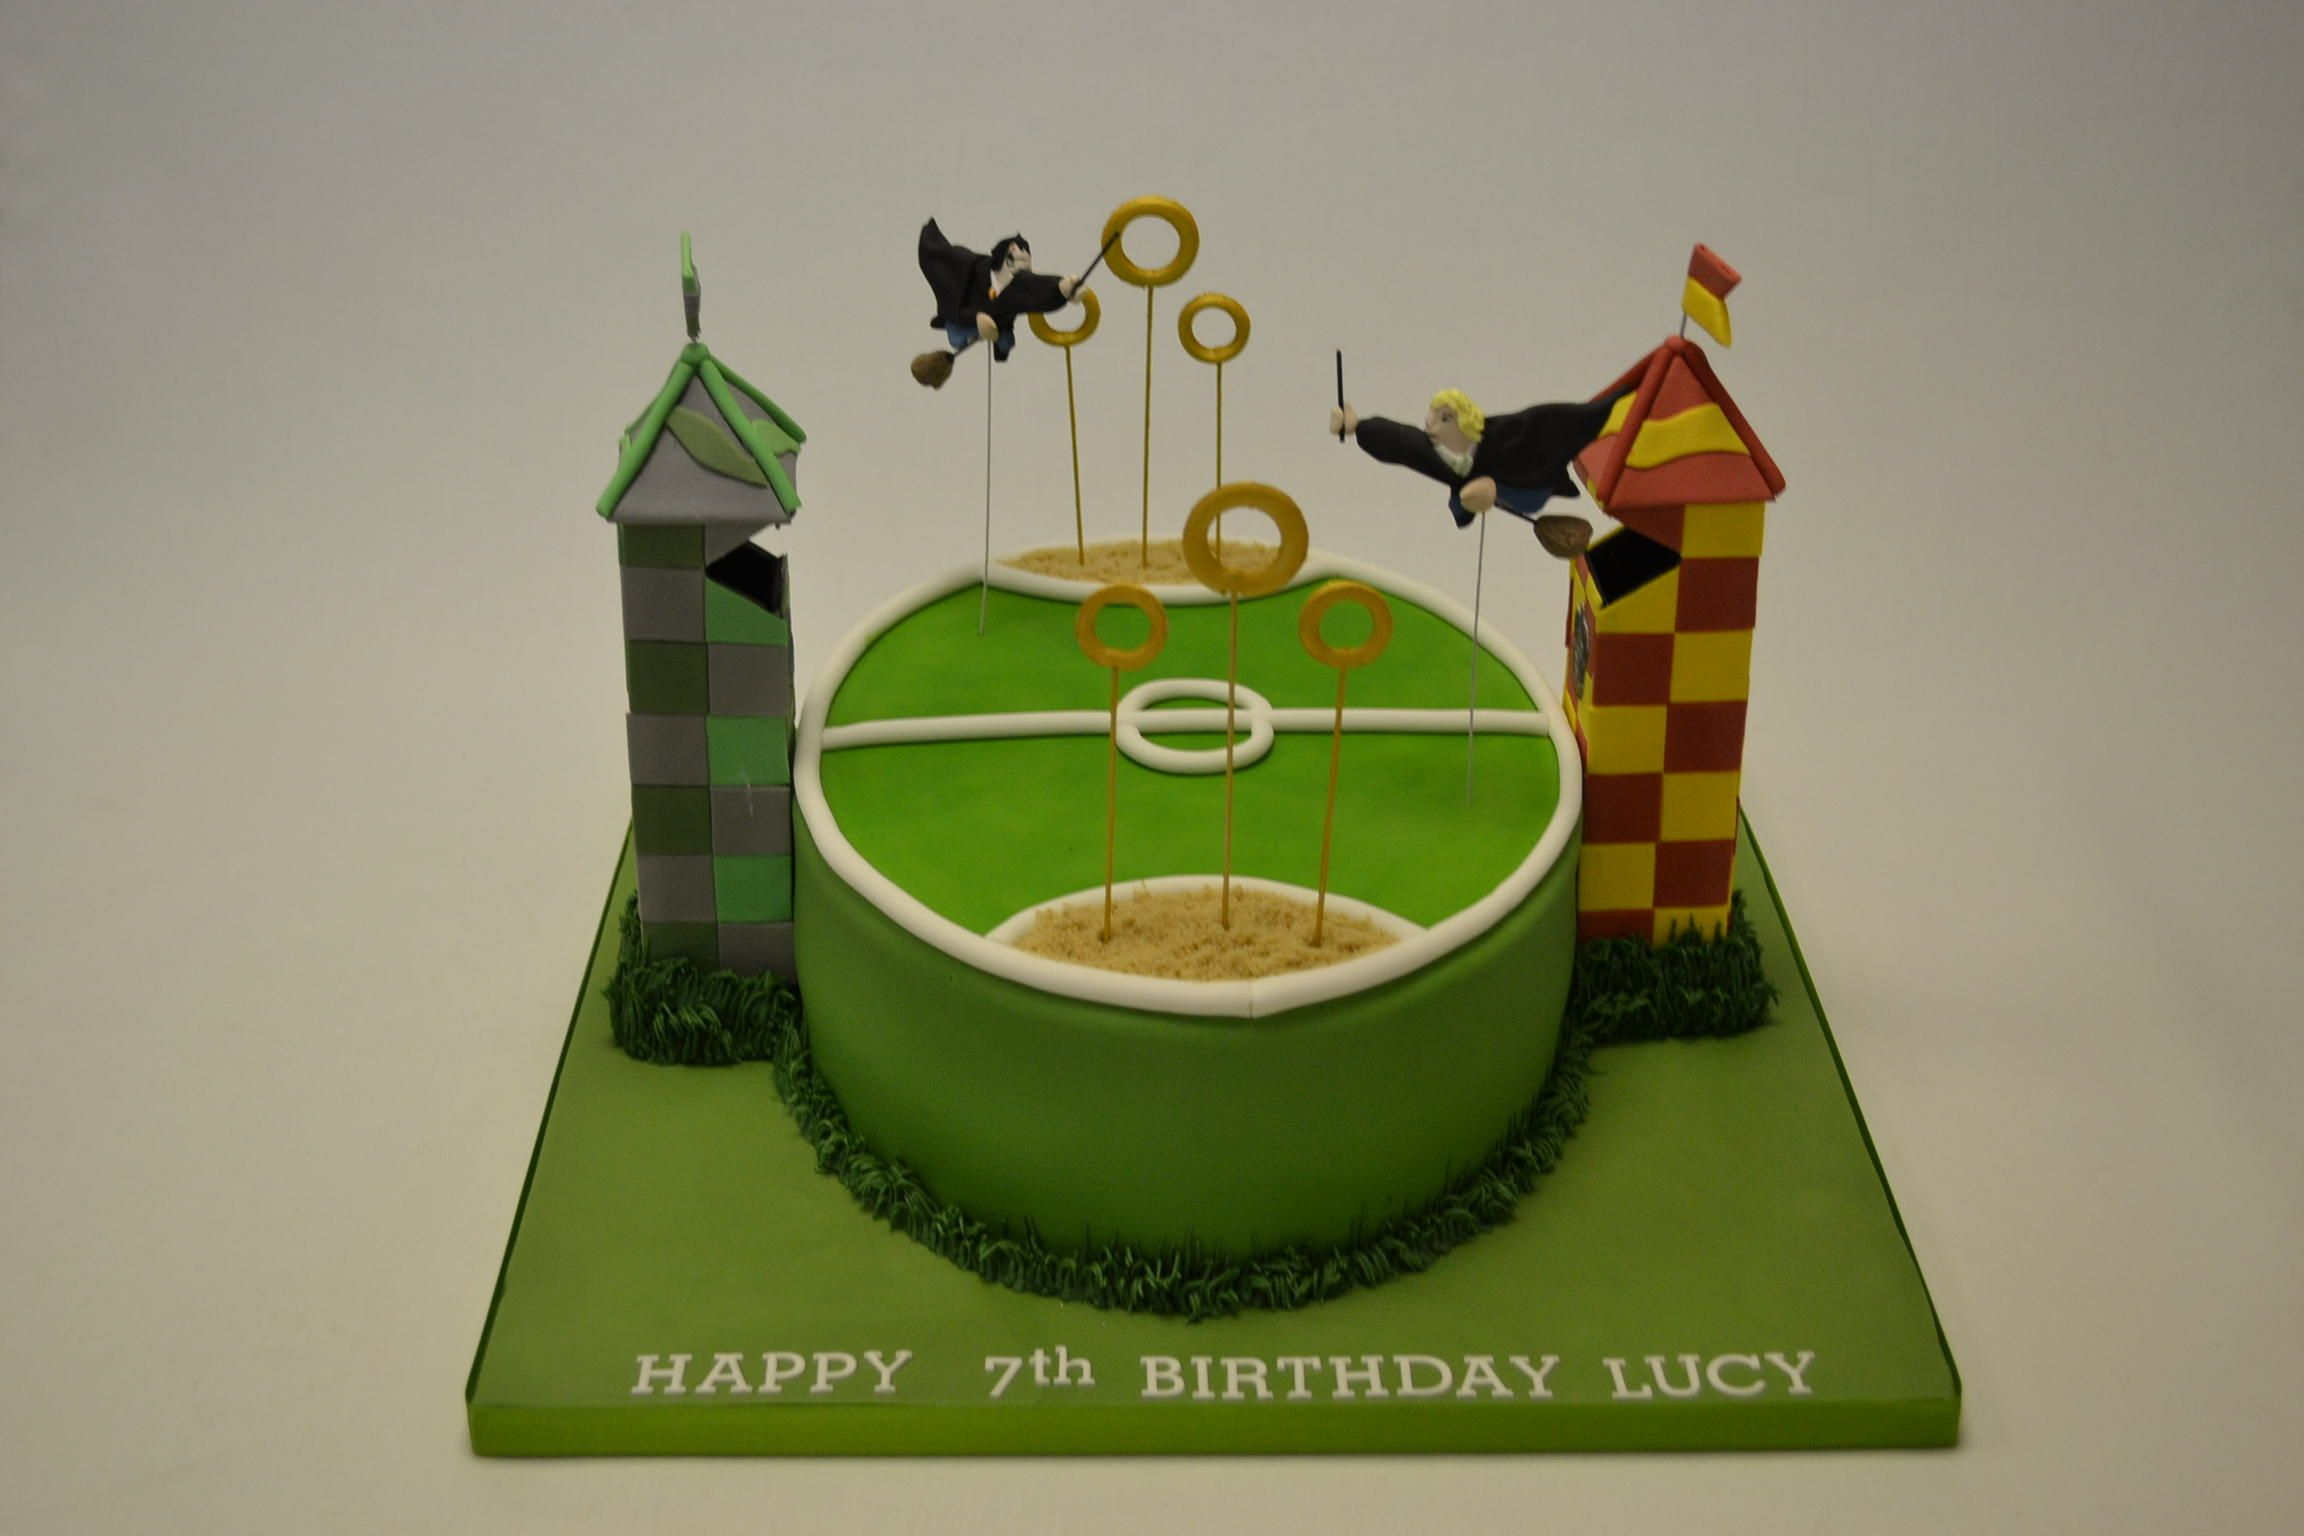 Birthday Cake Ideas Harry Potter : harry potter quidditch cake - Google Search Harry Potter ...